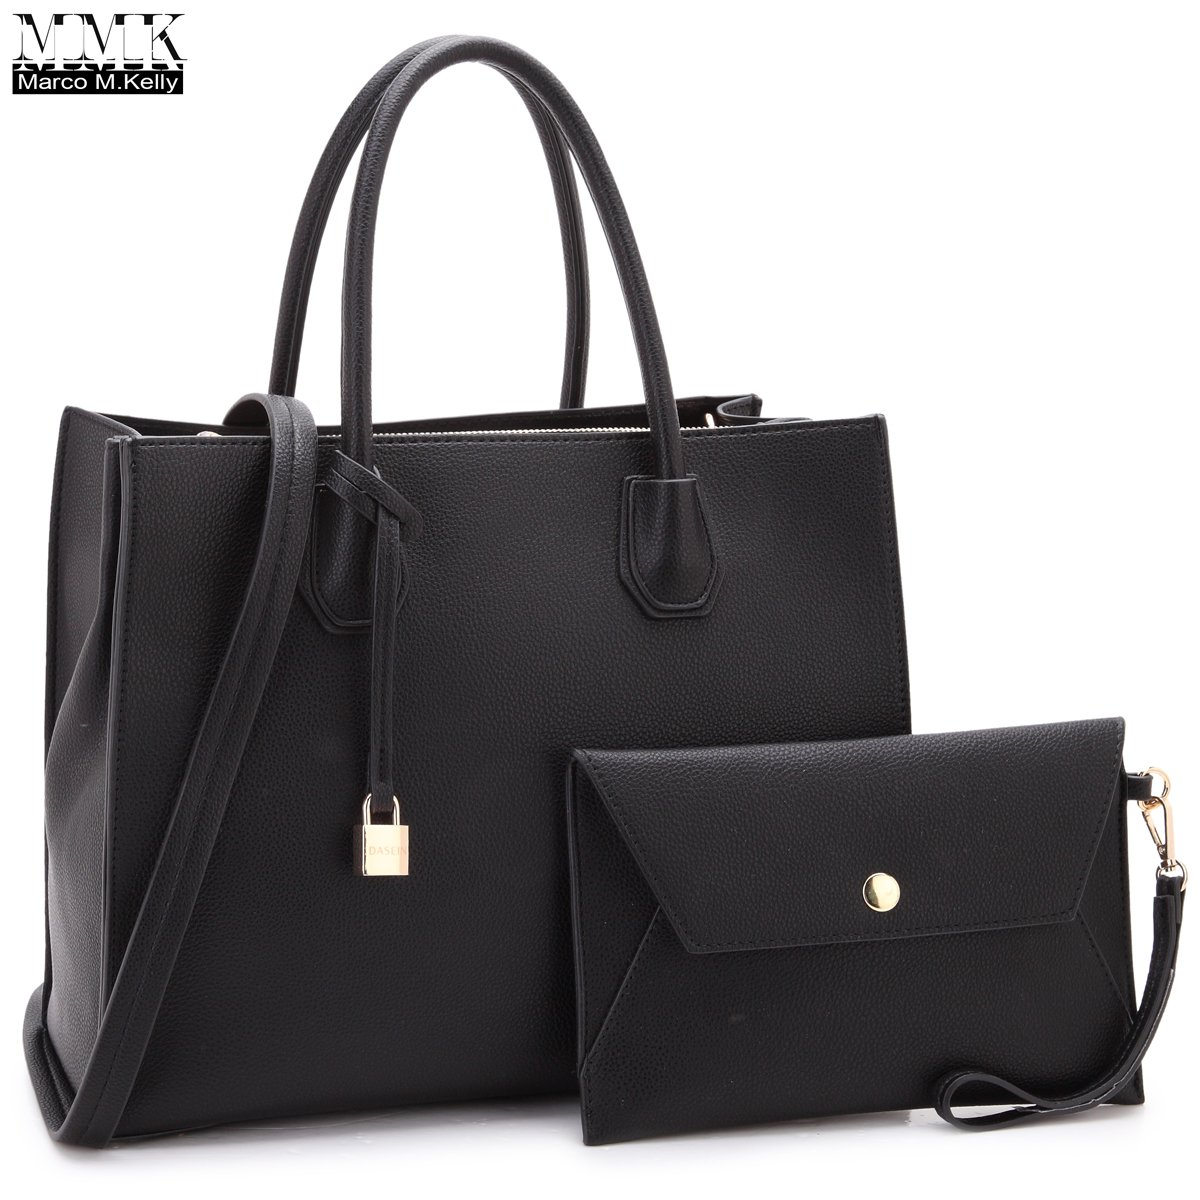 Women Fashion Handbag Matching wallet~Classic Women Satchel Tote Bag Shoulder Bags~Signature Women Designer Purse~Perfect Women Satchel handbag with Spring colors (FN-23-7661-BLACK) by 1988 Marco M.Kelly